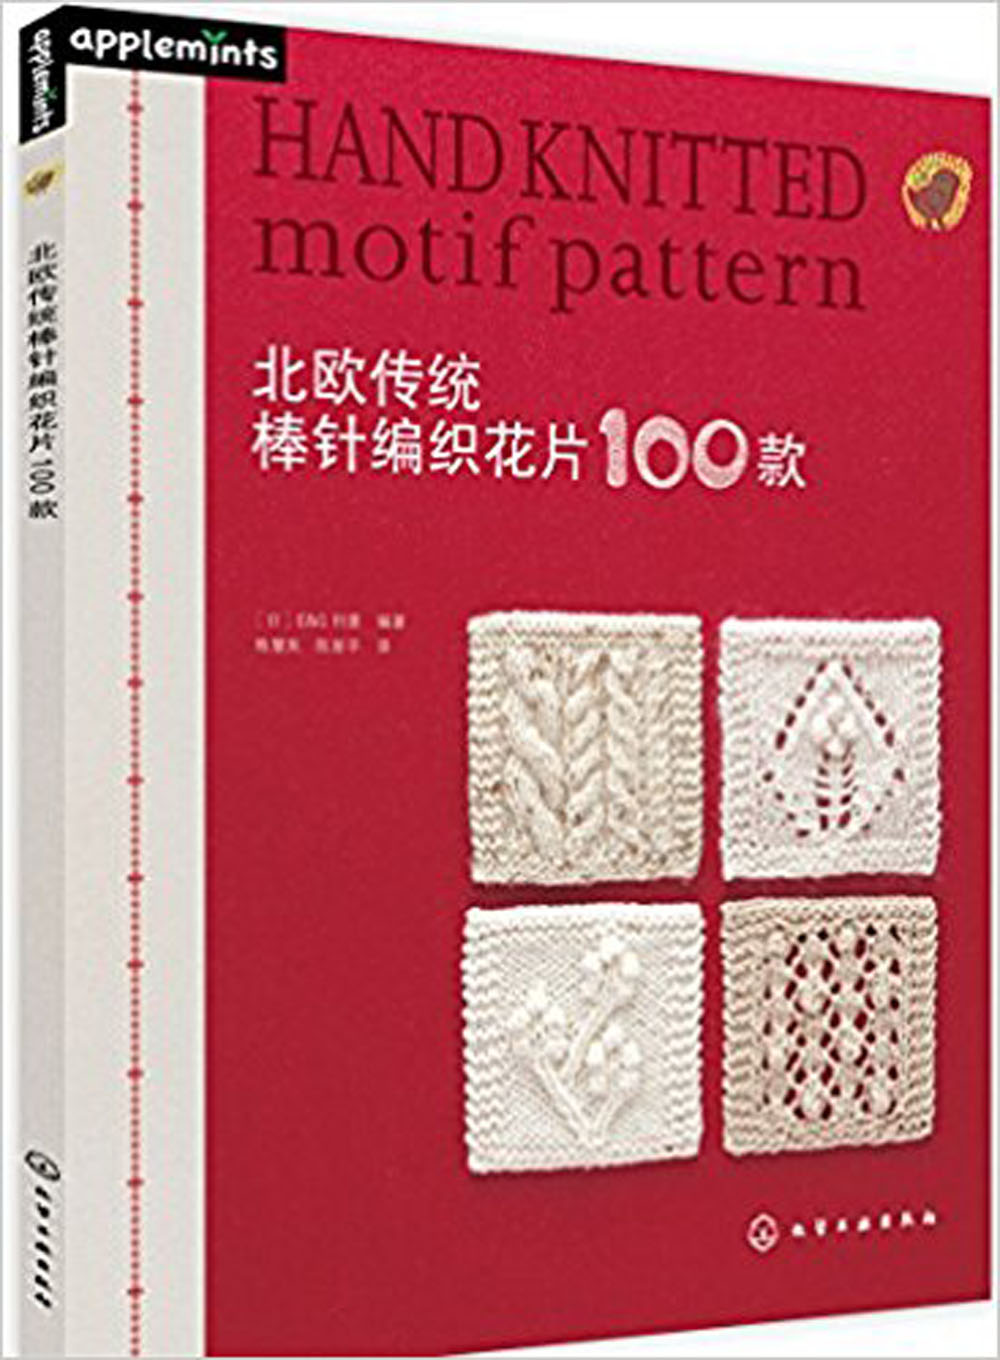 Hand Knitted motif pattern Nordic traditional needle bar knitting flower 100 pieces Hand Knitted motif pattern Nordic traditional needle bar knitting flower 100 pieces